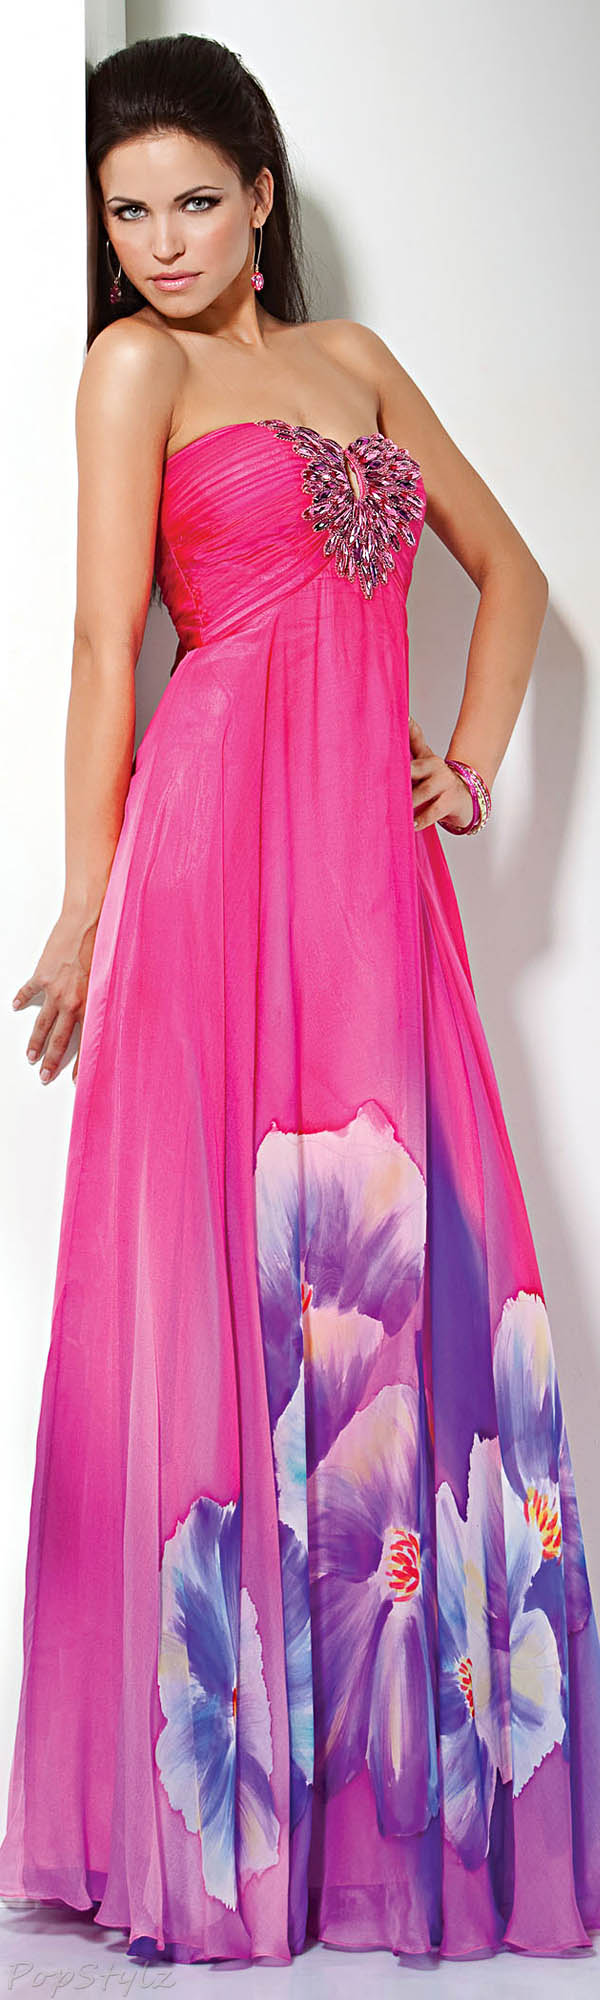 Jovani Colorful Evening Gown | vestidos de FIESTA y COCTEL ...